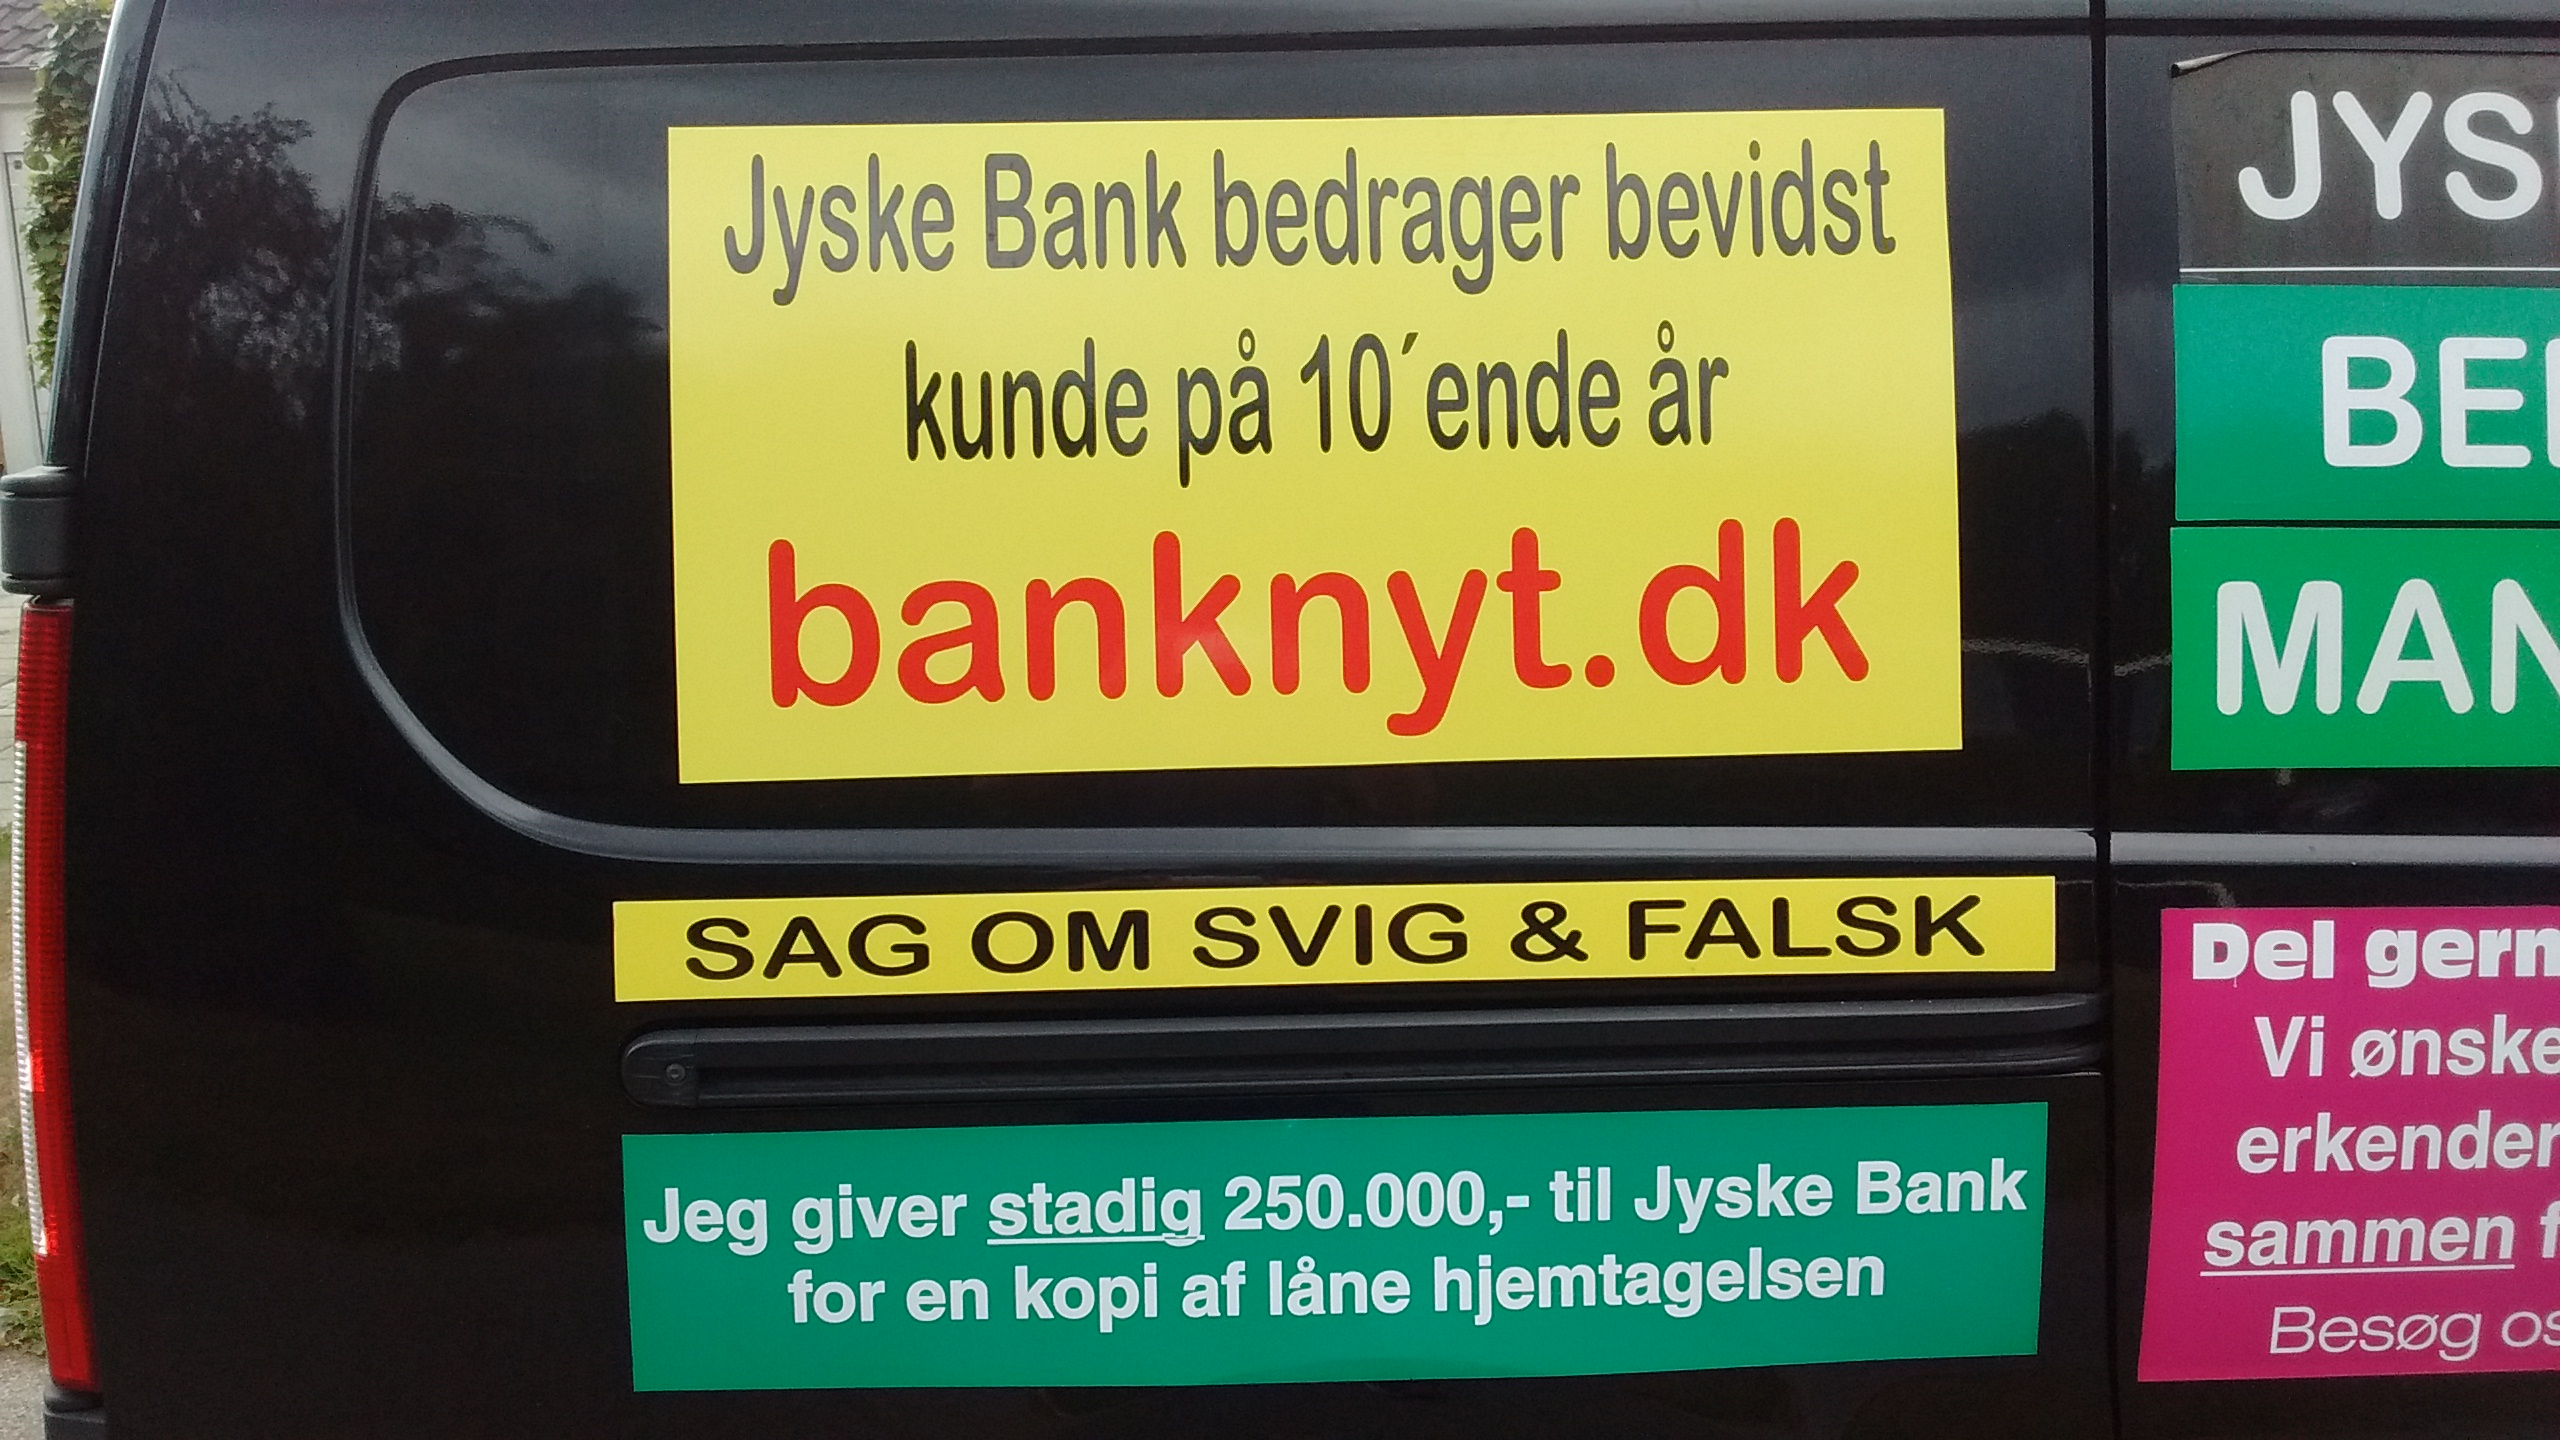 JYSKE BANKs SVINDEL / FRAUD - CALL / OPRÅB :-) Can the bank director CEO Anders Dam not understand We only want to talk with the bank, JYSKE BANK And find a solution, so we can get our life back We are talking about The last 10 years, the bank provisionally has deceived us. The Danish bank took 10 years from us. :-) Please talk to us #AndersChristianDam Rather than continue deceive us With a false interest rate swap, for a loan that has not never existed We write, and write, and write, while the bank continues the very deliberate fraud which the entire Group Board is aware of. :-) :-) A case that is so inflamed, that not even the Danish press does dare comment on it. do you think that there is something about what we are writing about. Would you ask the bank management Jyske Bank Link to the bank further down Why they will not answer their customer And deliver a copy of the loan, 4.328.000 DKK as the bank claiming the customer has borrowed i Nykredit As the Danish Bank changes interest rates, for the last 10 years, Actually since January 1, 2009 - Now the customer discovered and informed the Jyske Bank Jyske 3-bold Bank May 2016 that there was no loan taken. We are talking about fraud for millions, against just one customer :-) :-) Where do you come into contact with a fraudster who just does not want to stop deceiving you Have tried for over 2 years. DO YOU HAVE A SUGGESTION :-) from www.banknyt.dk Startede i jyske bank Helsingør I.L Tvedes Vej 7. 3000 Helsingør Dagblad Godt hjulpet af jyske bank medlemmer eller ansatte på Vesterbro, Vesterbrogade 9. Men godt assisteret af jyske bank hoved kontor i Silkeborg Vestergade Hvor koncern ledelsen / bestyrelsen ved Anders Christian Dam nu hjælper til med at dette svindel fortsætter Jyske Banks advokater som lyver for retten Tilbød 2-11-2016 forligs møde Men med den agenda at ville lave en rente bytte på et andet lån, for at sløre svindlen. ------------ Journalist Press just ask Danish Bank Jyske bank why the bank does not admit fraud And start to apologize all crimes. https://www.jyskebank.dk/kontakt/afdelingsinfo?departmentid=11660 :-) #Journalist #Press When the Danish banks deceive their customers a case of fraud in Danish banks against customers :-( :-( when the #danish #banks as #jyskebank are making fraud And the gang leader, controls the bank's fraud. :-( Anders Dam Bank's CEO refuses to quit. So it only shows how criminal the Danish jyske bank is. :-) Do not trust the #JyskeBank they are #lying constantly, when the bank cheats you The fraud that is #organized through by 3 departments, and many members of the organization JYSKE BANK :-( The Danish bank jyske bank is a criminal offense, Follow the case in Danish law BS 99-698/2015 :-) :-) Thanks to all of you we meet on the road. Which gives us your full support to the fight against the Danish fraud bank. JYSKE BANK :-) :-) Please ask the bank, jyske bank if we have raised a loan of DKK 4.328.000 In Danish bank nykredit. as the bank writes to their customer who is ill after a brain bleeding - As the bank is facing Danish courts and claim is a loan behind the interest rate swap The swsp Jyske Bank itself made 16-07-2008 https://facebook.com/JyskeBank.dk/photos/a.1468232419878888.1073741869.1045397795495688/1468234663211997/?type=3&source=54&ref=page_internal :-( contact the bank here https://www.jyskebank.dk/omjyskebank/organisation/koncernledergruppe - Also ask about date and evidence that the loan offer has been withdrawn in due time before expiry :-) :-) And ask for the prompt contact to Nykredit Denmark And ask why (new credit bank) Nykredit, first would answer the question, after nykredit received a subpoena, to speak true. - Even at a meeting Nykredit refused to sign anything. Not to provide evidence against Jyske Bank for fraud - But after several letters admit Nykredit Bank on writing - There is no loan of 4.328.000 kr https://facebook.com/JyskeBank.dk/photos/a.1051107938258007.1073741840.1045397795495688/1344678722234259/?type=3&source=54&ref=page_internal :-( :-( So nothing to change interest rates https://facebook.com/JyskeBank.dk/photos/a.1045554925479975.1073741831.1045397795495688/1045554998813301/?type=3&source=54&ref=page_internal Thus admit Nykredit Bank that their friends in Jyske Bank are making fraud against Danish customers :-( :-( :-( Today June 29th claims Jyske Bank that a loan of DKK 4.328.000 Has been reduced to DKK 2.927.634 and raised interest rates DKK 81.182 https://facebook.com/JyskeBank.dk/photos/a.1046306905404777.1073741835.1045397795495688/1755579747810819/?type=3&source=54 :-) :-) Group management jyske bank know, at least since May 2016 There is no loan of 4.328.000 DKK And that has never existed. And the ceo is conscious about the fraud against the bank's customer :-) Nevertheless, the bank continues the fraud But now with the Group's Board of Directors knowledge and approval :-) The bank will not respond to anything Do you want to investigate the fraud case as a journalist? :-( :-( Fraud that the bank jyske bank has committed, over the past 10 years. :-) :-) https://facebook.com/story.php?story_fbid=10217380674608165&id=1213101334&ref=bookmarks Will make it better, when we share timeline, with link to Appendix :-) www.banknyt.dk /-----------/ #ANDERSDAM I SPIDSEN AF DEN STORE DANSKE NOK SMÅ #KRIMINELLE #BANK #JYSKEBANK Godt hjulpet af #Les www.les.dk #LundElmerSandager #Advokater :-) #JYSKE BANK BLEV OPDAGET / TAGET I AT LAVE #MANDATSVIG #BEDRAGERI #DOKUMENTFALSK #UDNYTTELSE #SVIG #FALSK :-) Banken skriver i fundamentet at jyskebank er #TROVÆRDIG #HÆDERLIG #ÆRLIG DET ER DET VI SKAL OPKLARE I DENNE HER SAG. :-) Offer spørger flere gange om jyske bank har nogle kommentar eller rettelser til www.banknyt.dk og opslag Jyske bank svare slet ikke :-) :-) We are still talking about 10 years of fraud Follow the case in Danish court Denmark Viborg BS 99-698/2015 :-) :-) Link to the bank's management jyske bank ask them please If we have borrowed DKK 4.328.000 as offered on May 20, 2008 in Nykredit The bank still take interest on this alleged loan in the 10th year. and refuses to answer anything :-) :-) Funny enough for all that loan is not existing just ask jyske bank why the bank does not admit fraud And start to apologize all crimes. https://www.jyskebank.dk/kontakt/afdelingsinfo?departmentid=11660 #Bank #AnderChristianDam #Financial #News #Press #Share #Pol #Recommendation #Sale #Firesale #AndersDam #JyskeBank #ATP #PFA #MortenUlrikGade #PhilipBaruch #LES #GF #BirgitBushThuesen #LundElmerSandager #Nykredit #MetteEgholmNielsen #Loan #Fraud #CasperDamOlsen #NicolaiHansen #gangcrimes #crimes :-) just ask jyske bank why the bank does not admit fraud And start to apologize all crimes. https://www.jyskebank.dk/kontakt/afdelingsinfo?departmentid=11660 #Koncernledelse #jyskebank #Koncernbestyrelsen #SvenBuhrkall #KurtBligaardPedersen #RinaAsmussen #PhilipBaruch #JensABorup #KeldNorup #ChristinaLykkeMunk #HaggaiKunisch #MarianneLillevang #Koncerndirektionen #AndersDam #LeifFLarsen #NielsErikJakobsen #PerSkovhus #PeterSchleidt / IMG_20180711_161803477